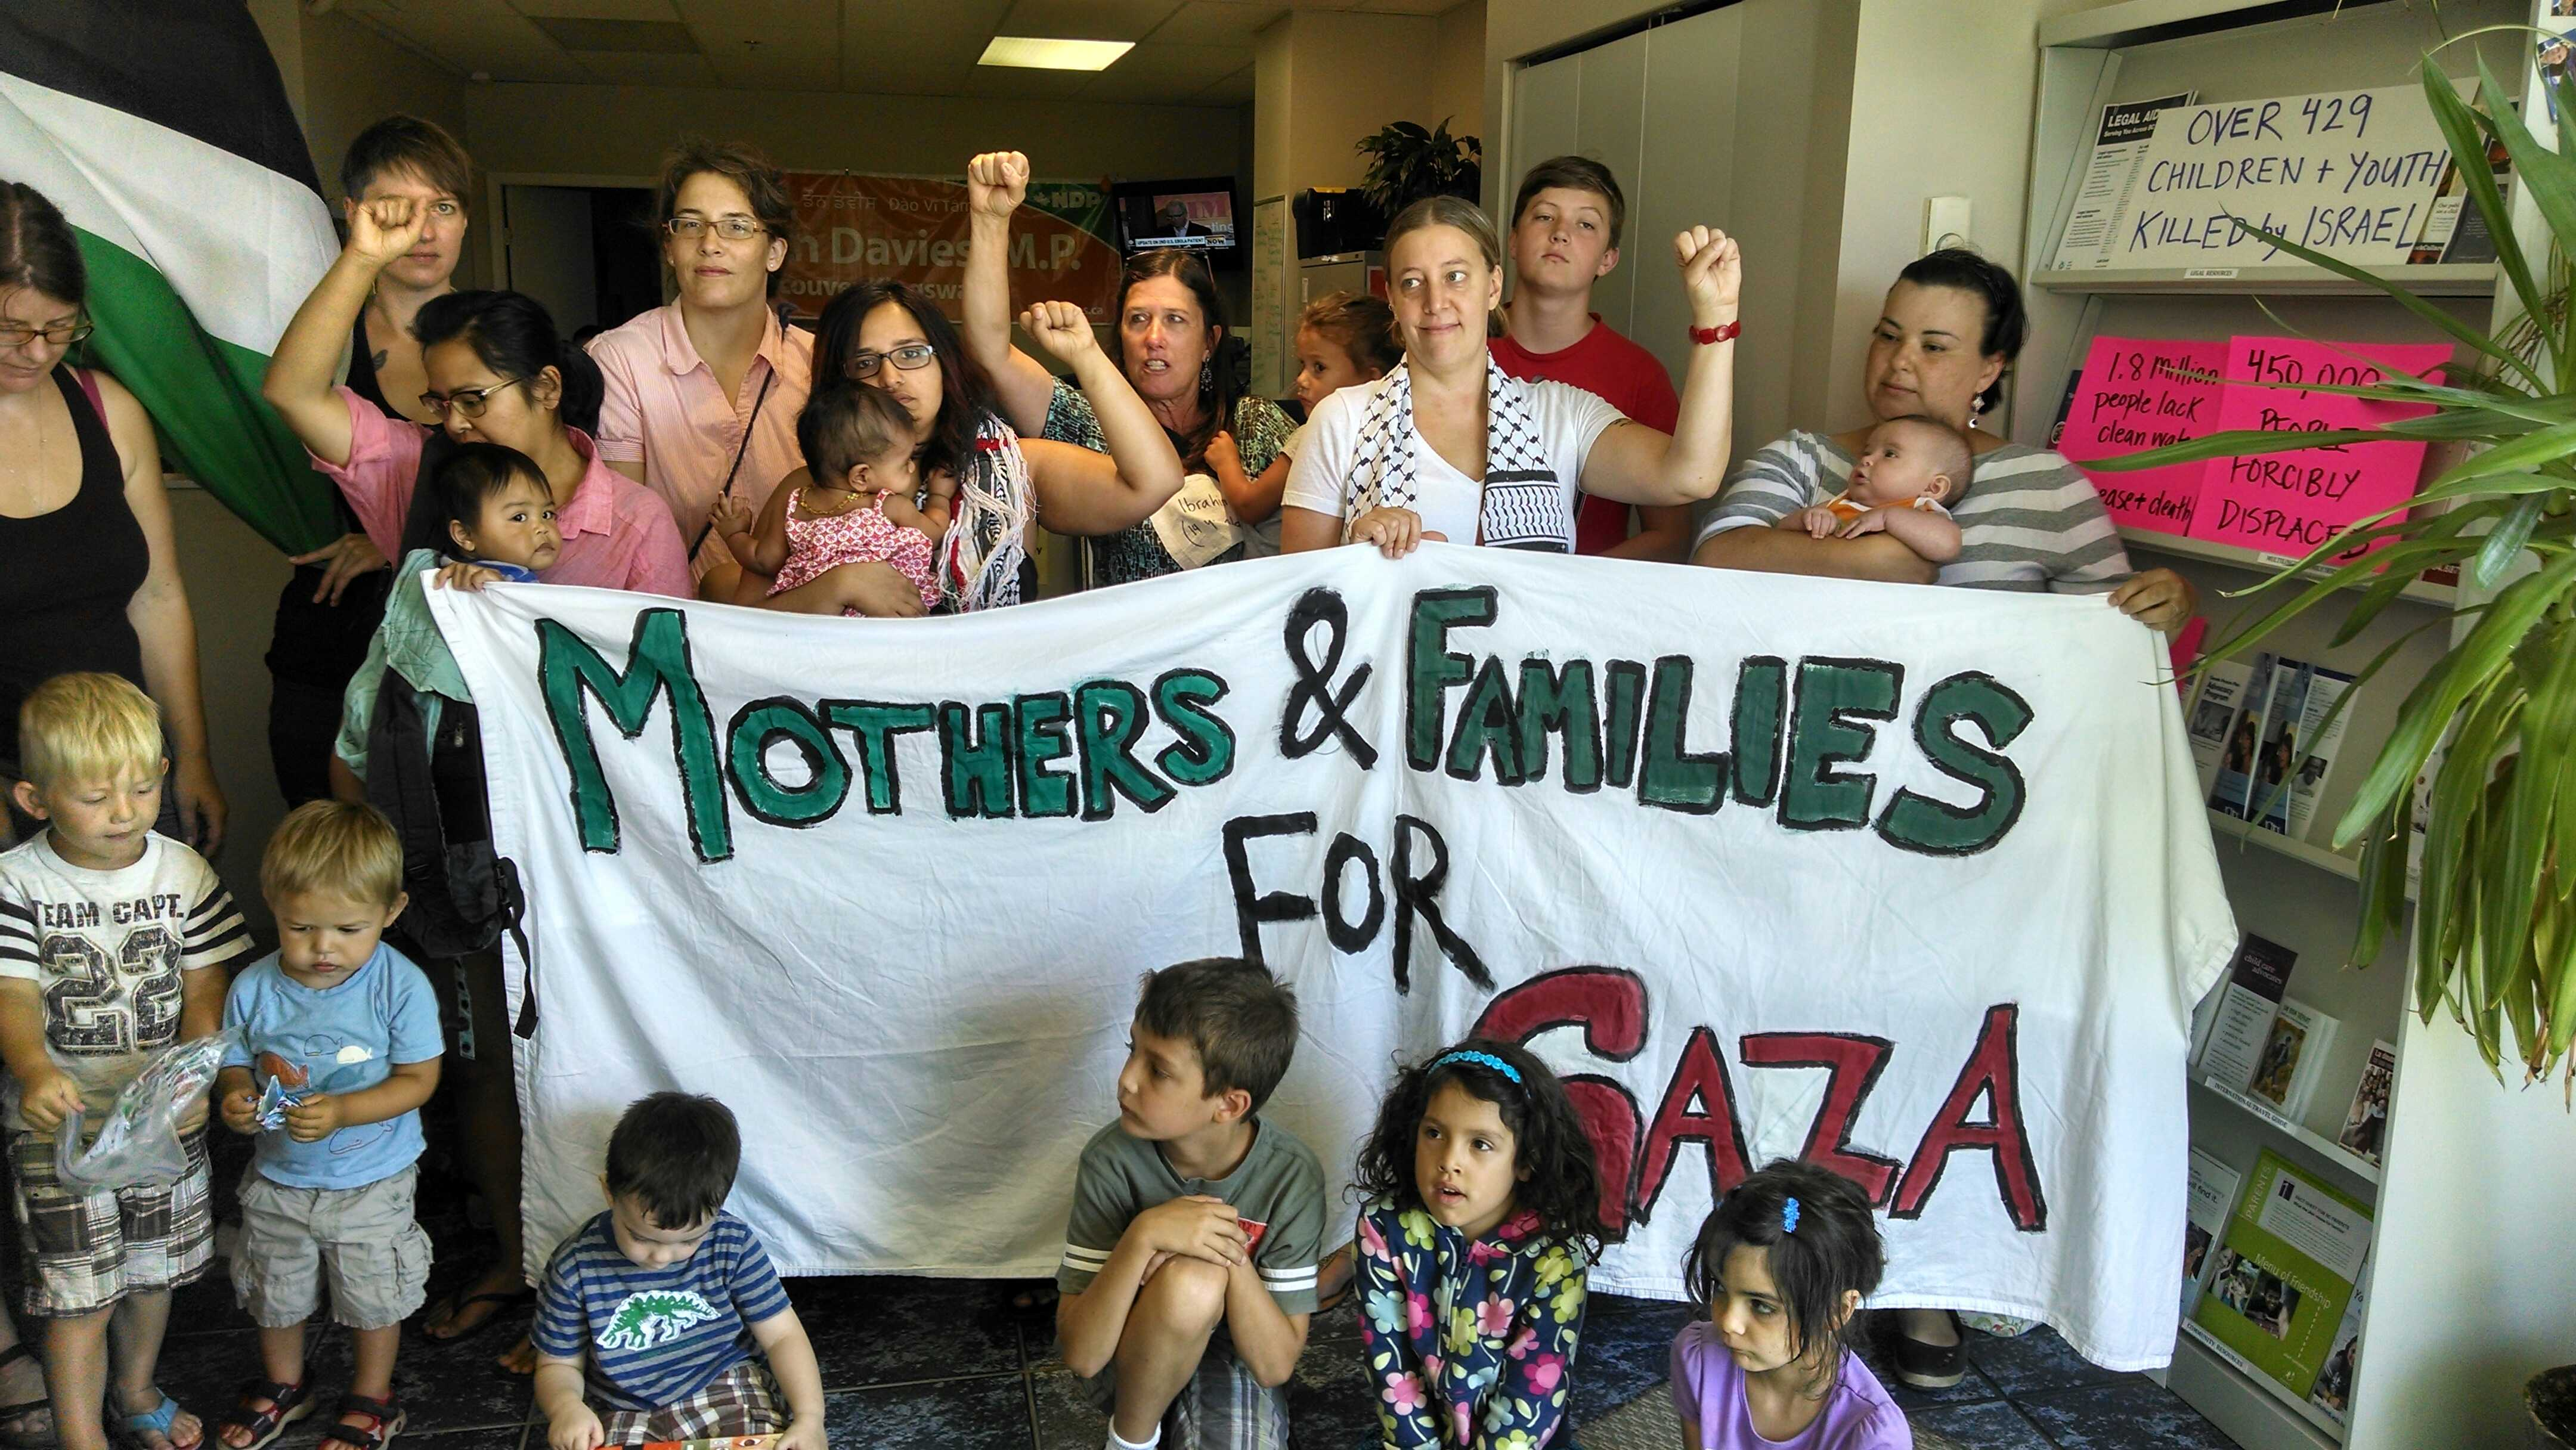 Photo: Mothers and Families for Gaza